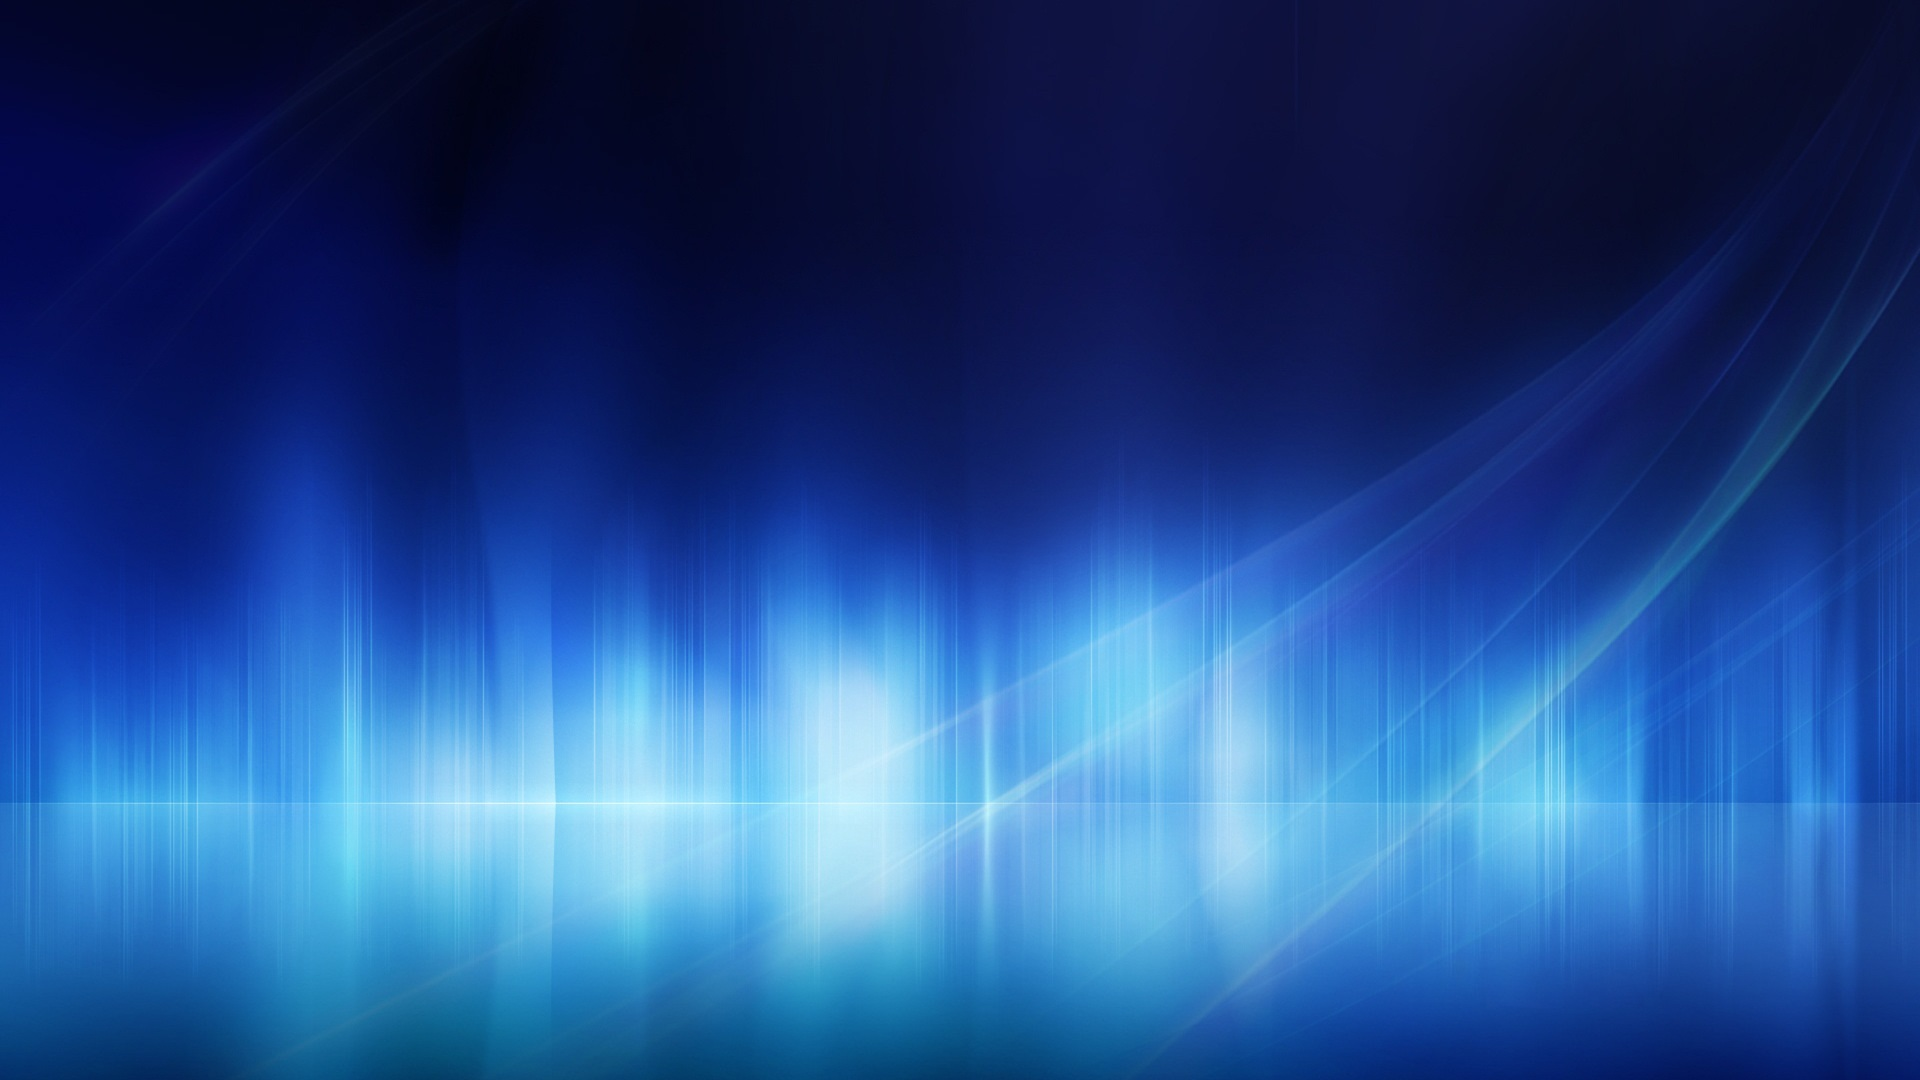 Hd Abstract Blue Background: Light-blue-lighting-wallpaper-dark-background-full-hd